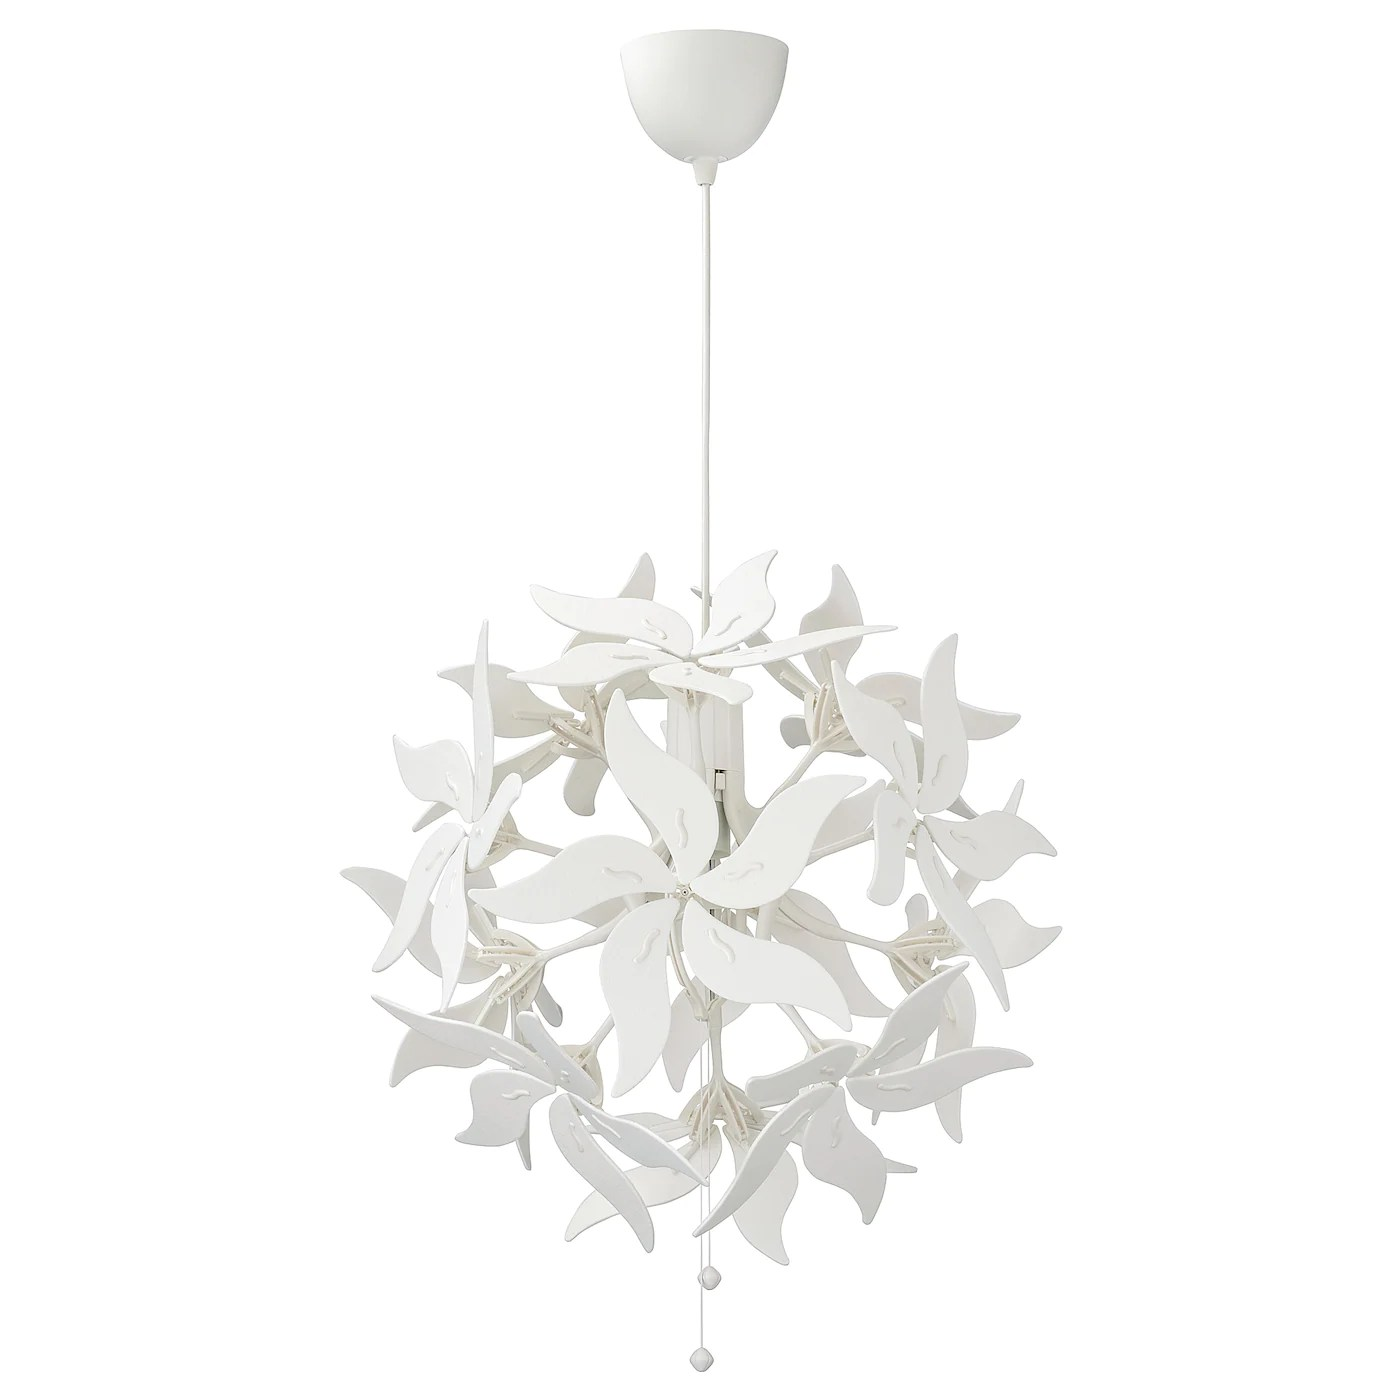 This compensation may impact how and where products appear on th. Ramsele Lampada A Sospensione Fiore Bianco 43 Cm Ikea It